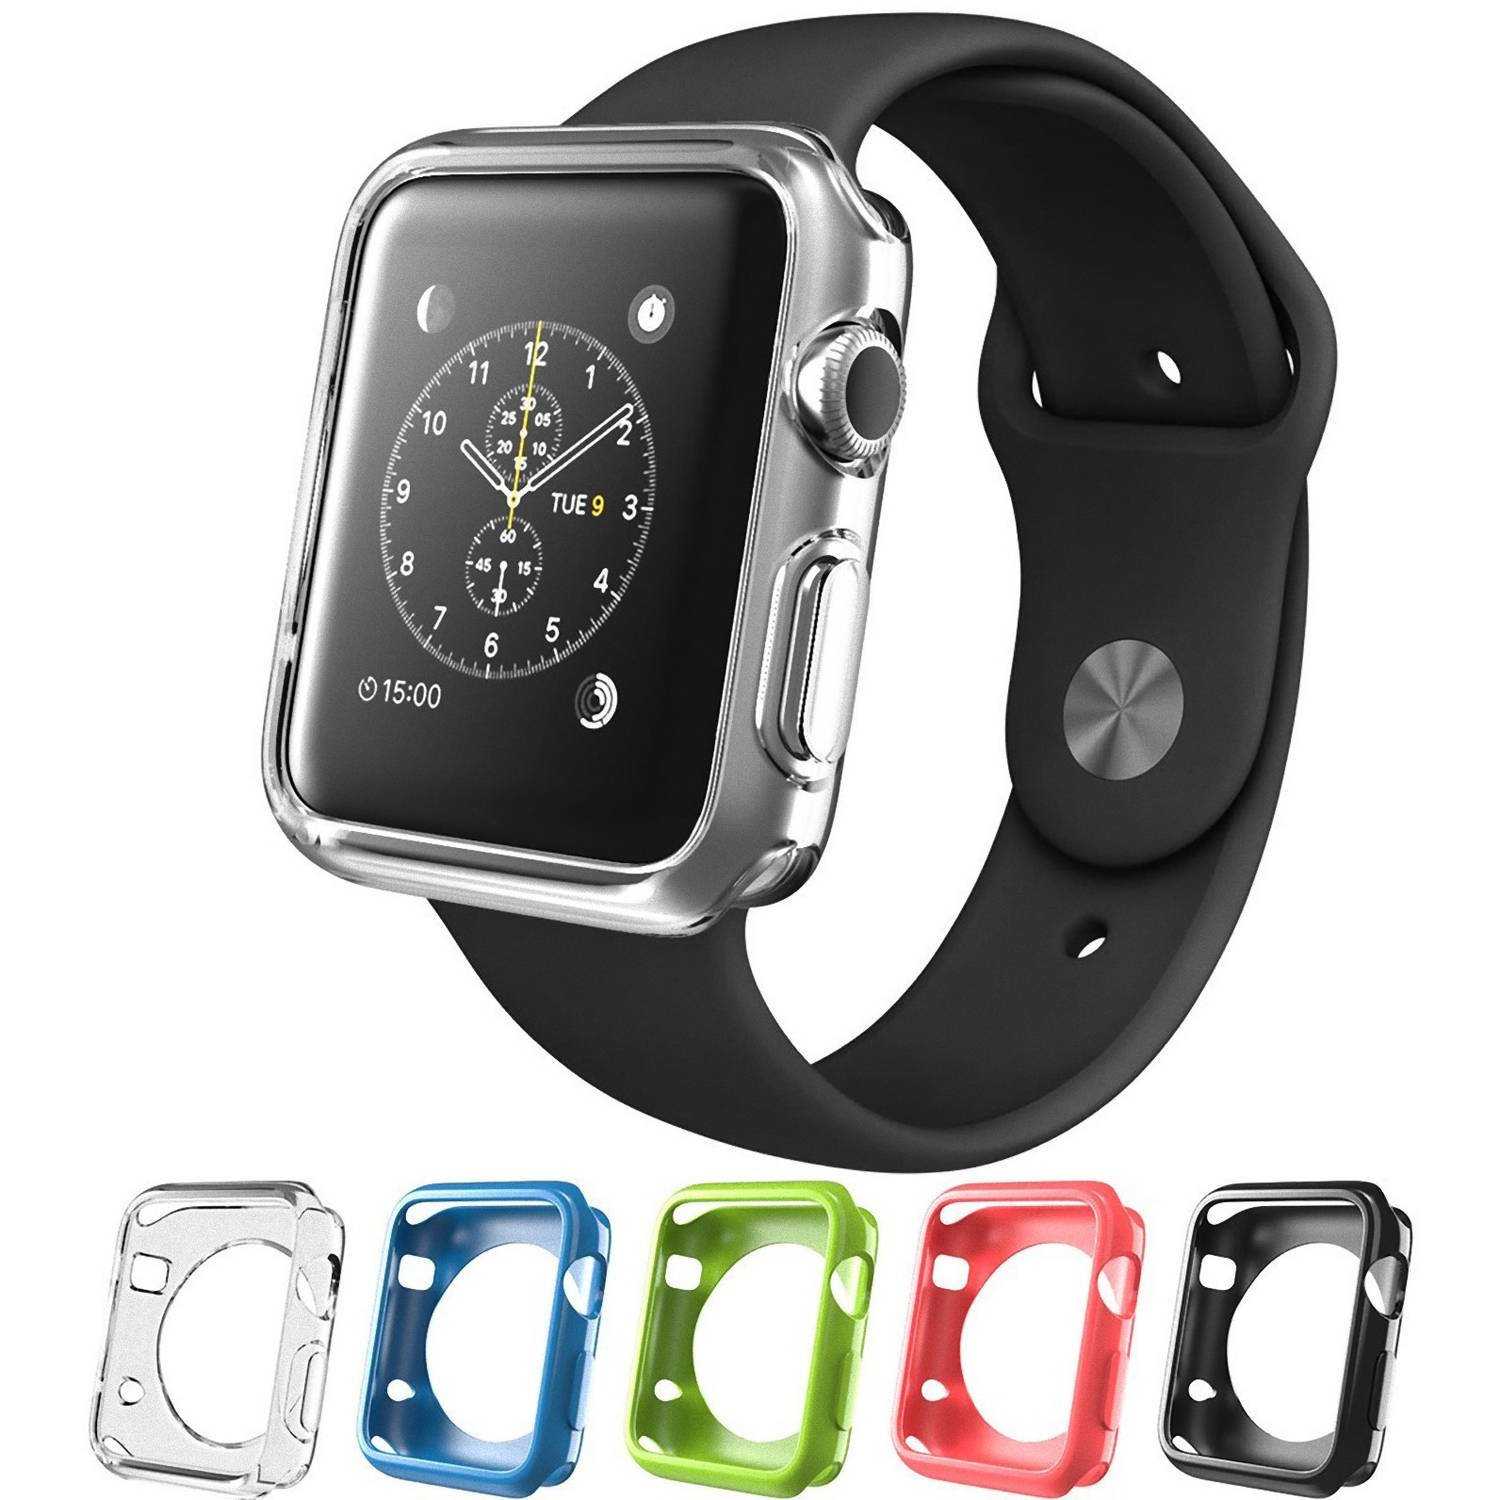 Apple Watch Case, i-Blason TPU Cases ,5 Color Combination Pack  for Apple Watch / Watch Sport / Watch Edition 2015